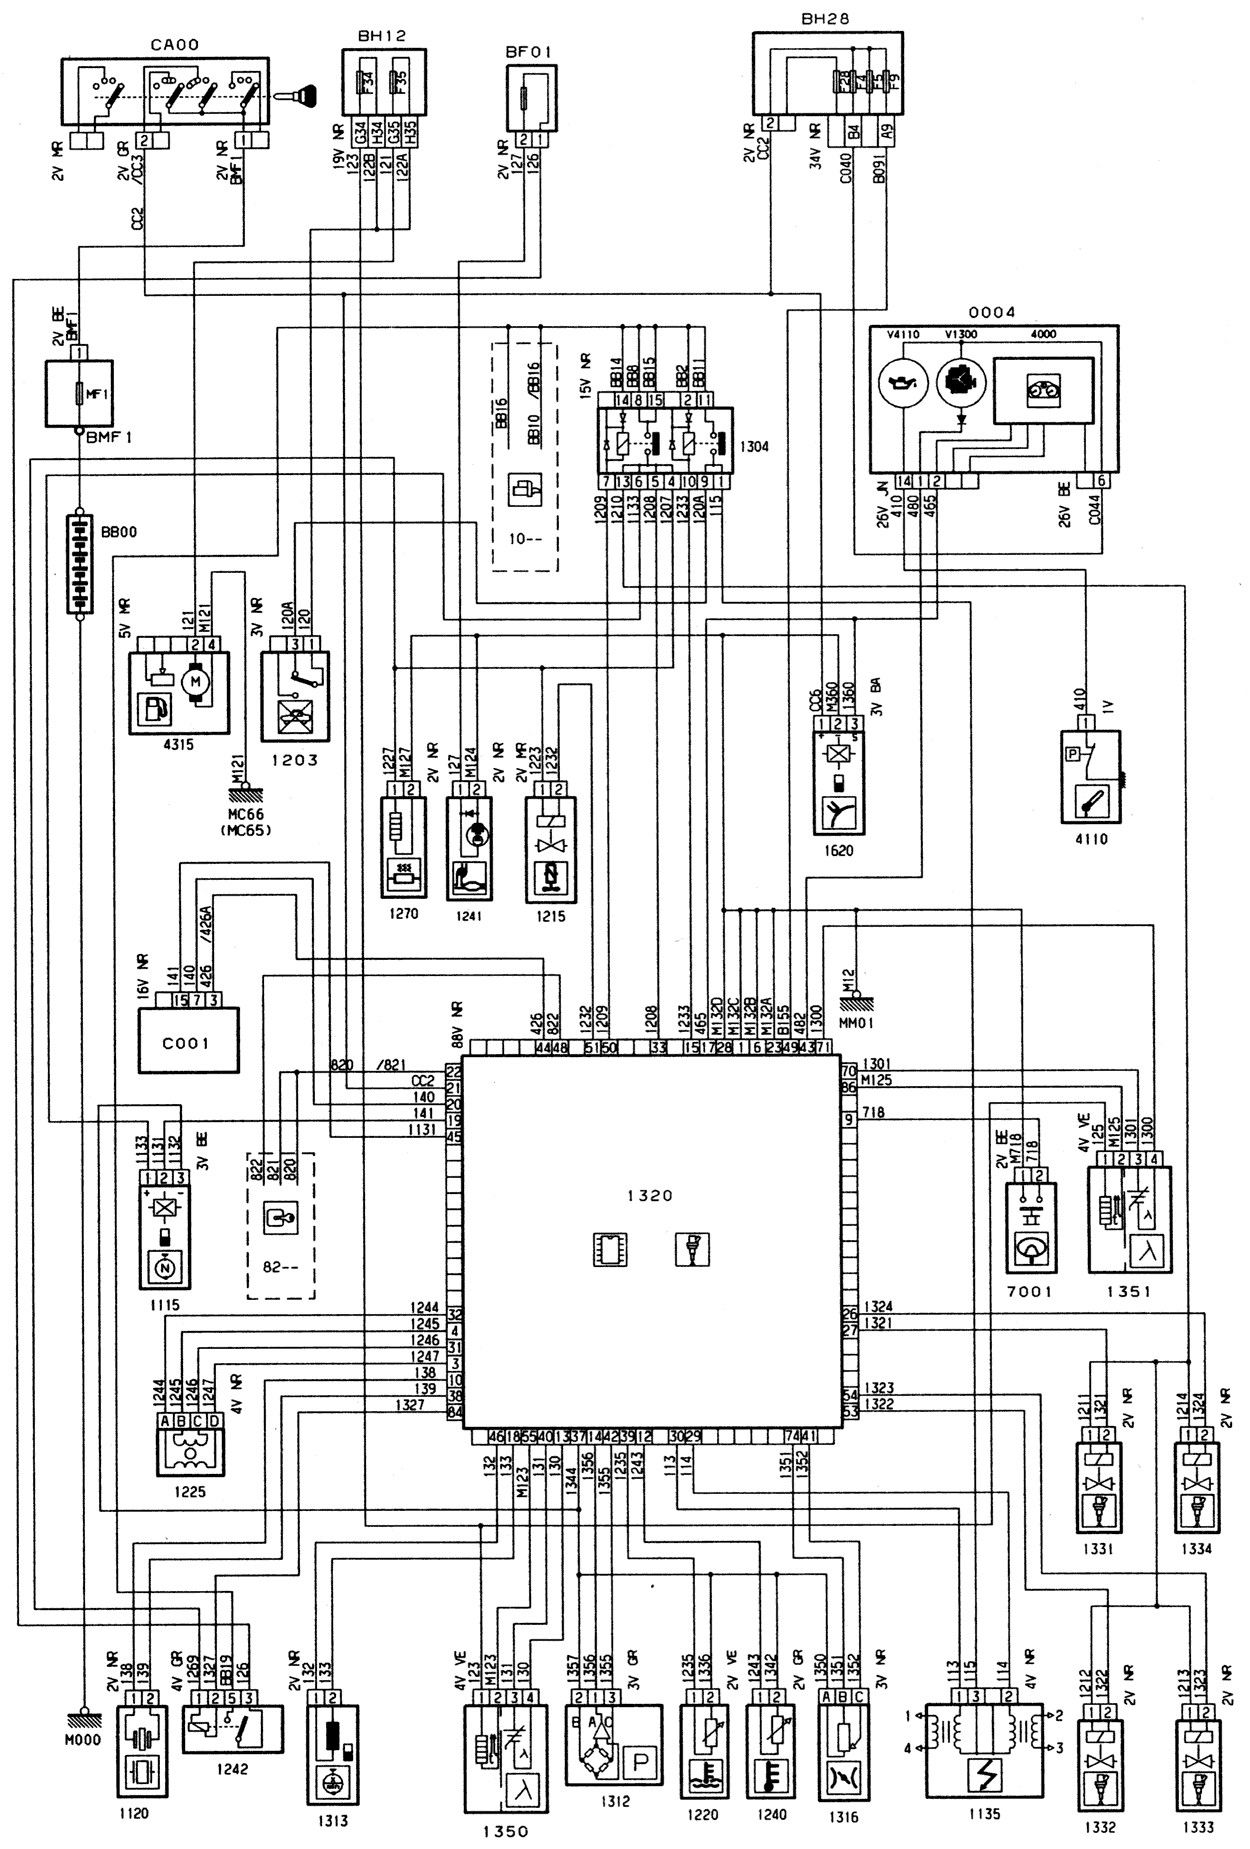 Unique Wiring Diagram for Auto Gauge Tachometer | Car gauges, Tachometer,  DiagramPinterest